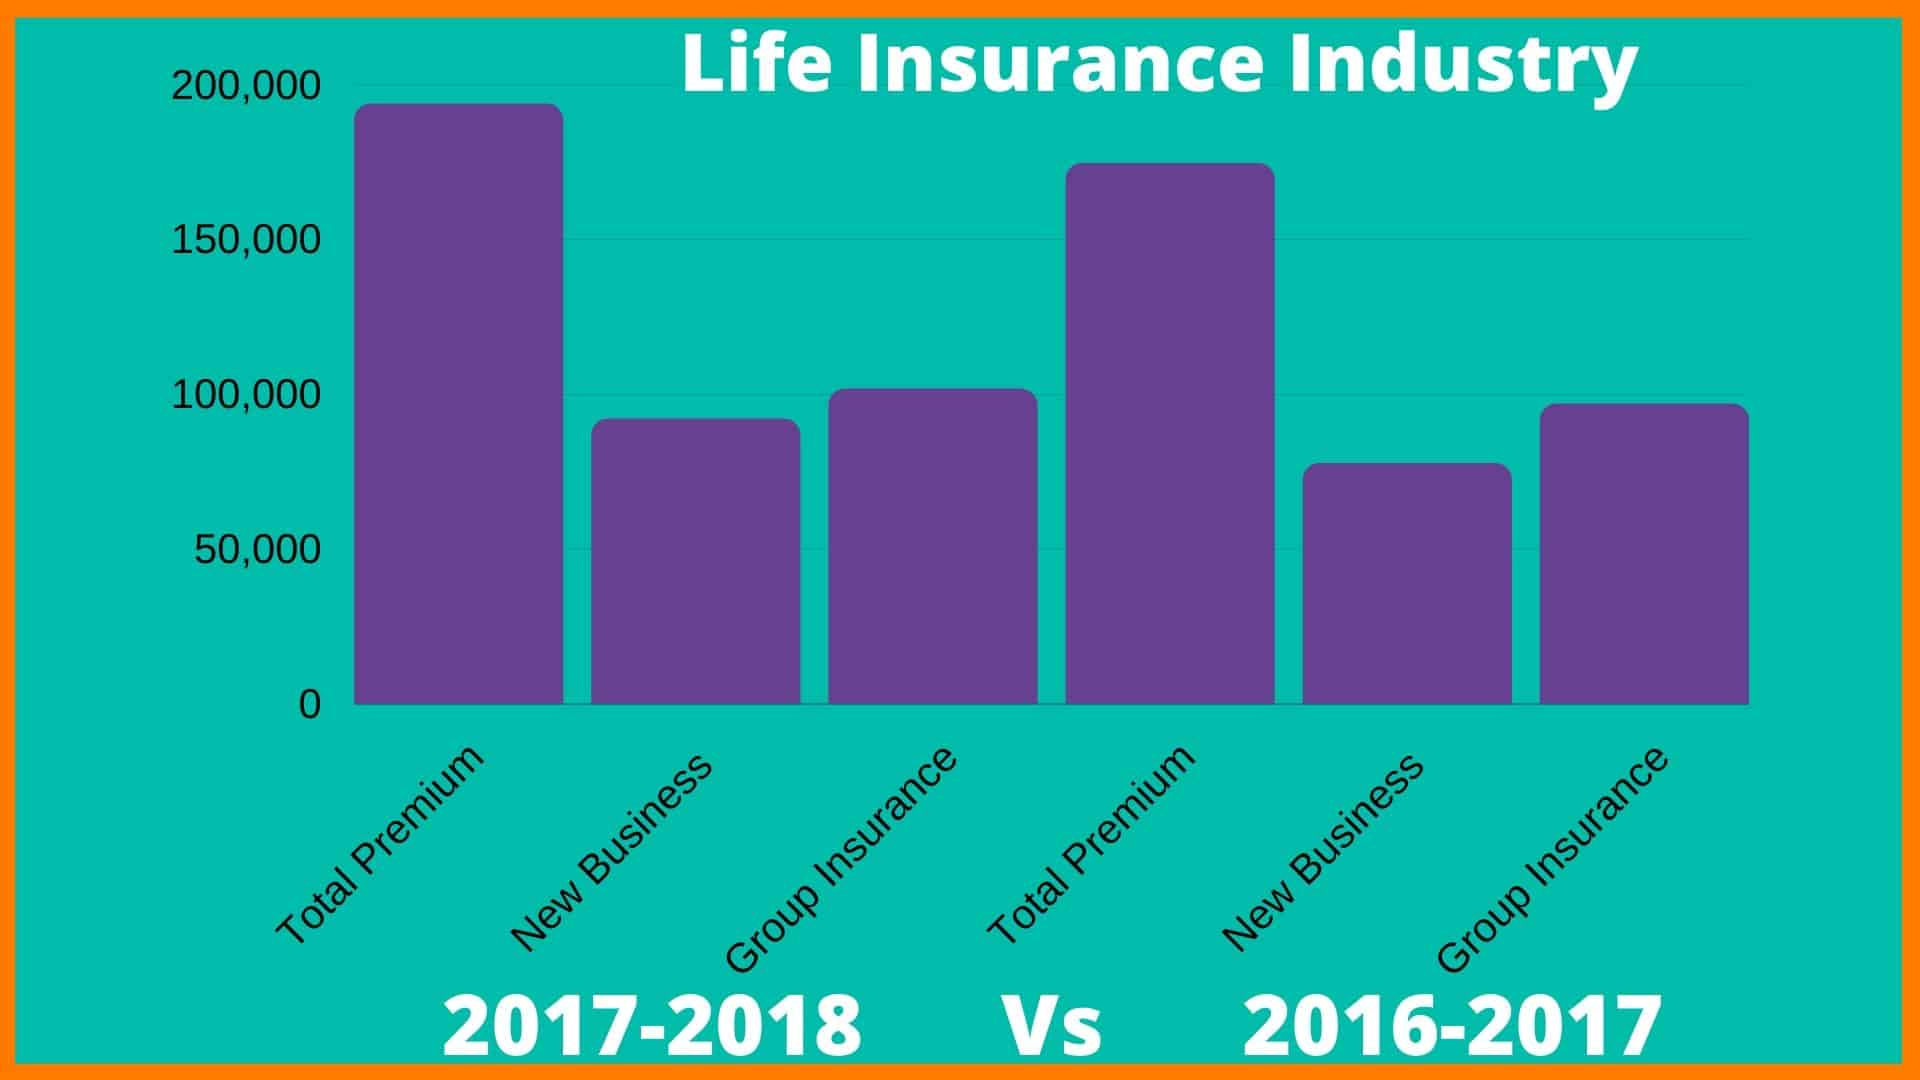 Life Insurance Industry In India